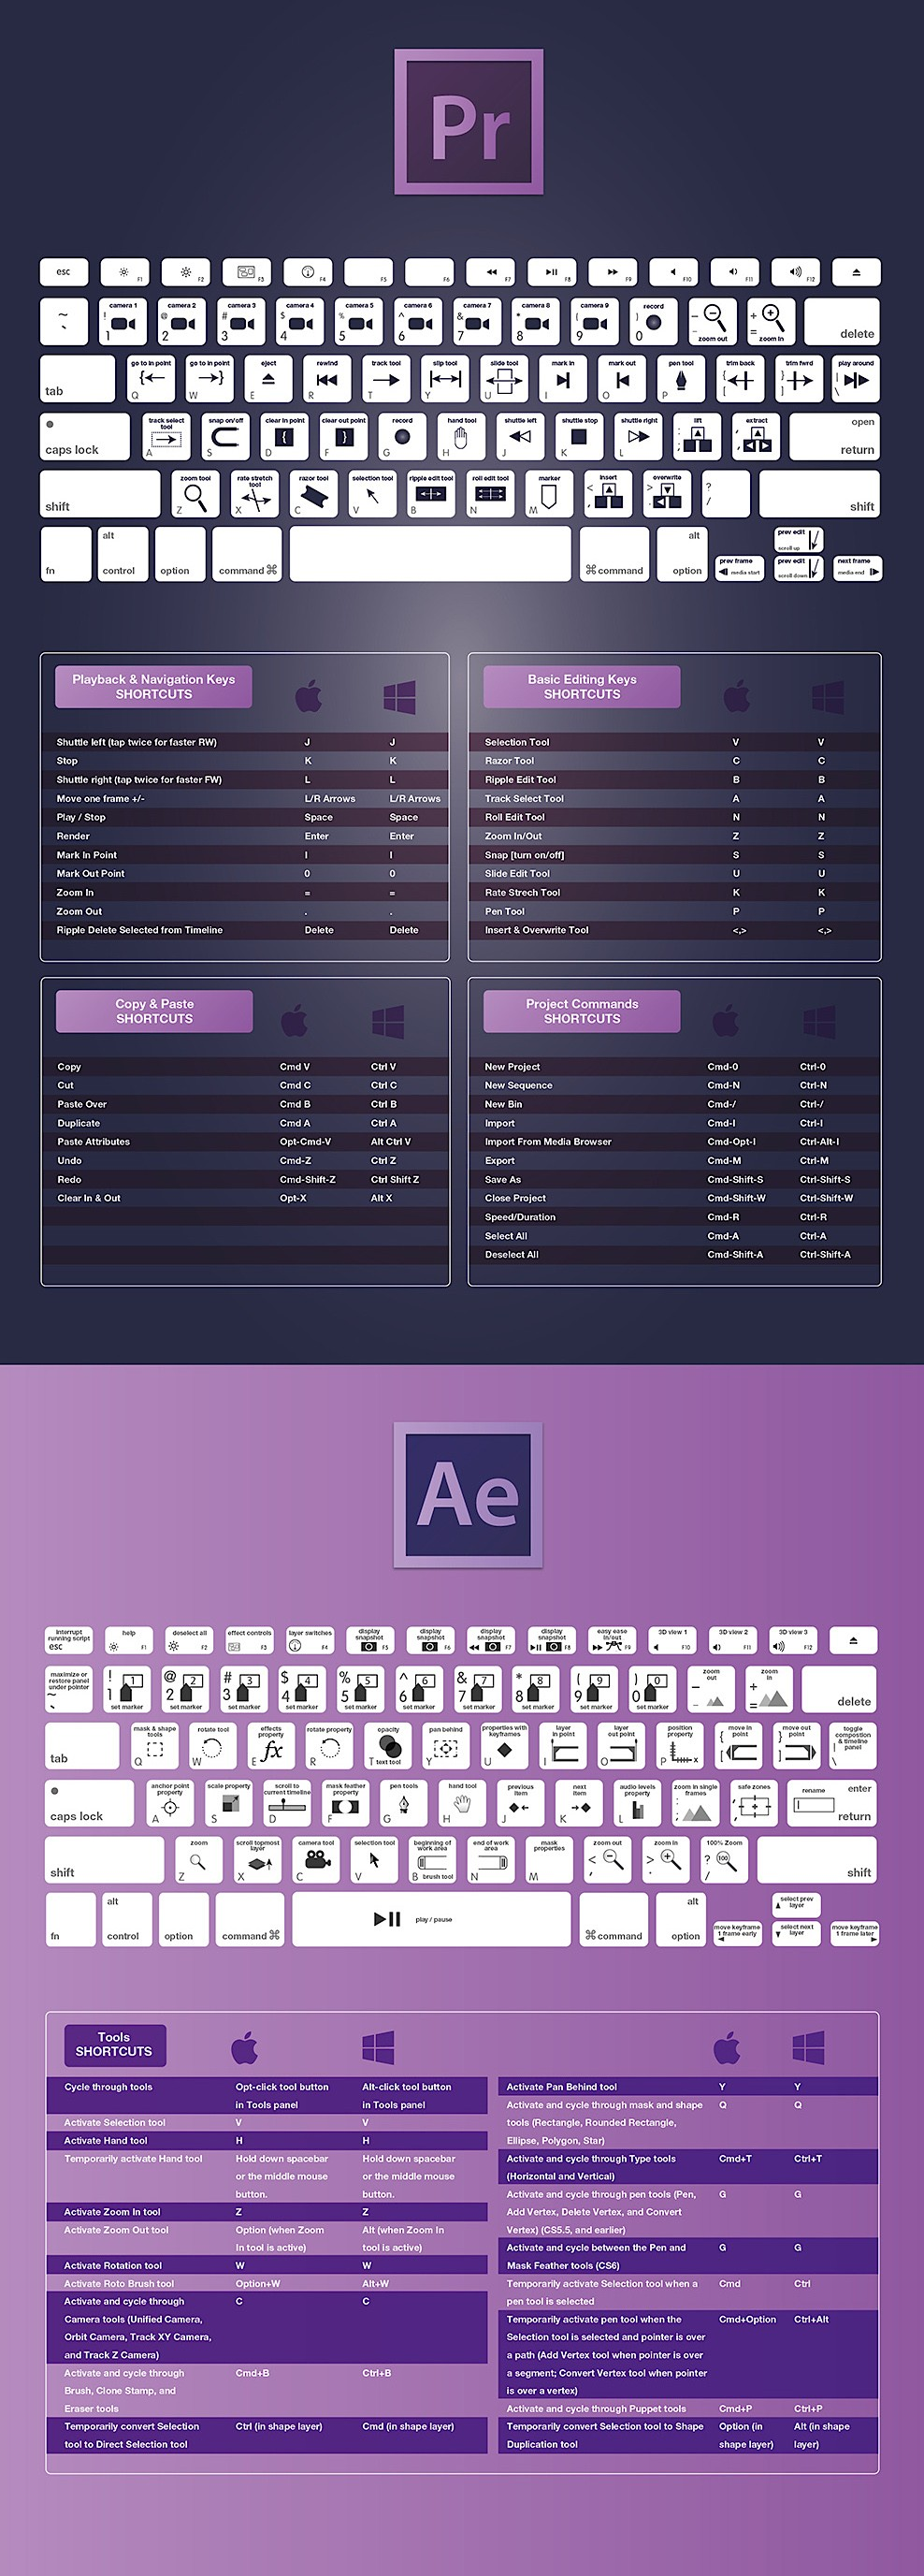 Every Keyboard Shortcut That You Will Ever Need for Premiere Pro